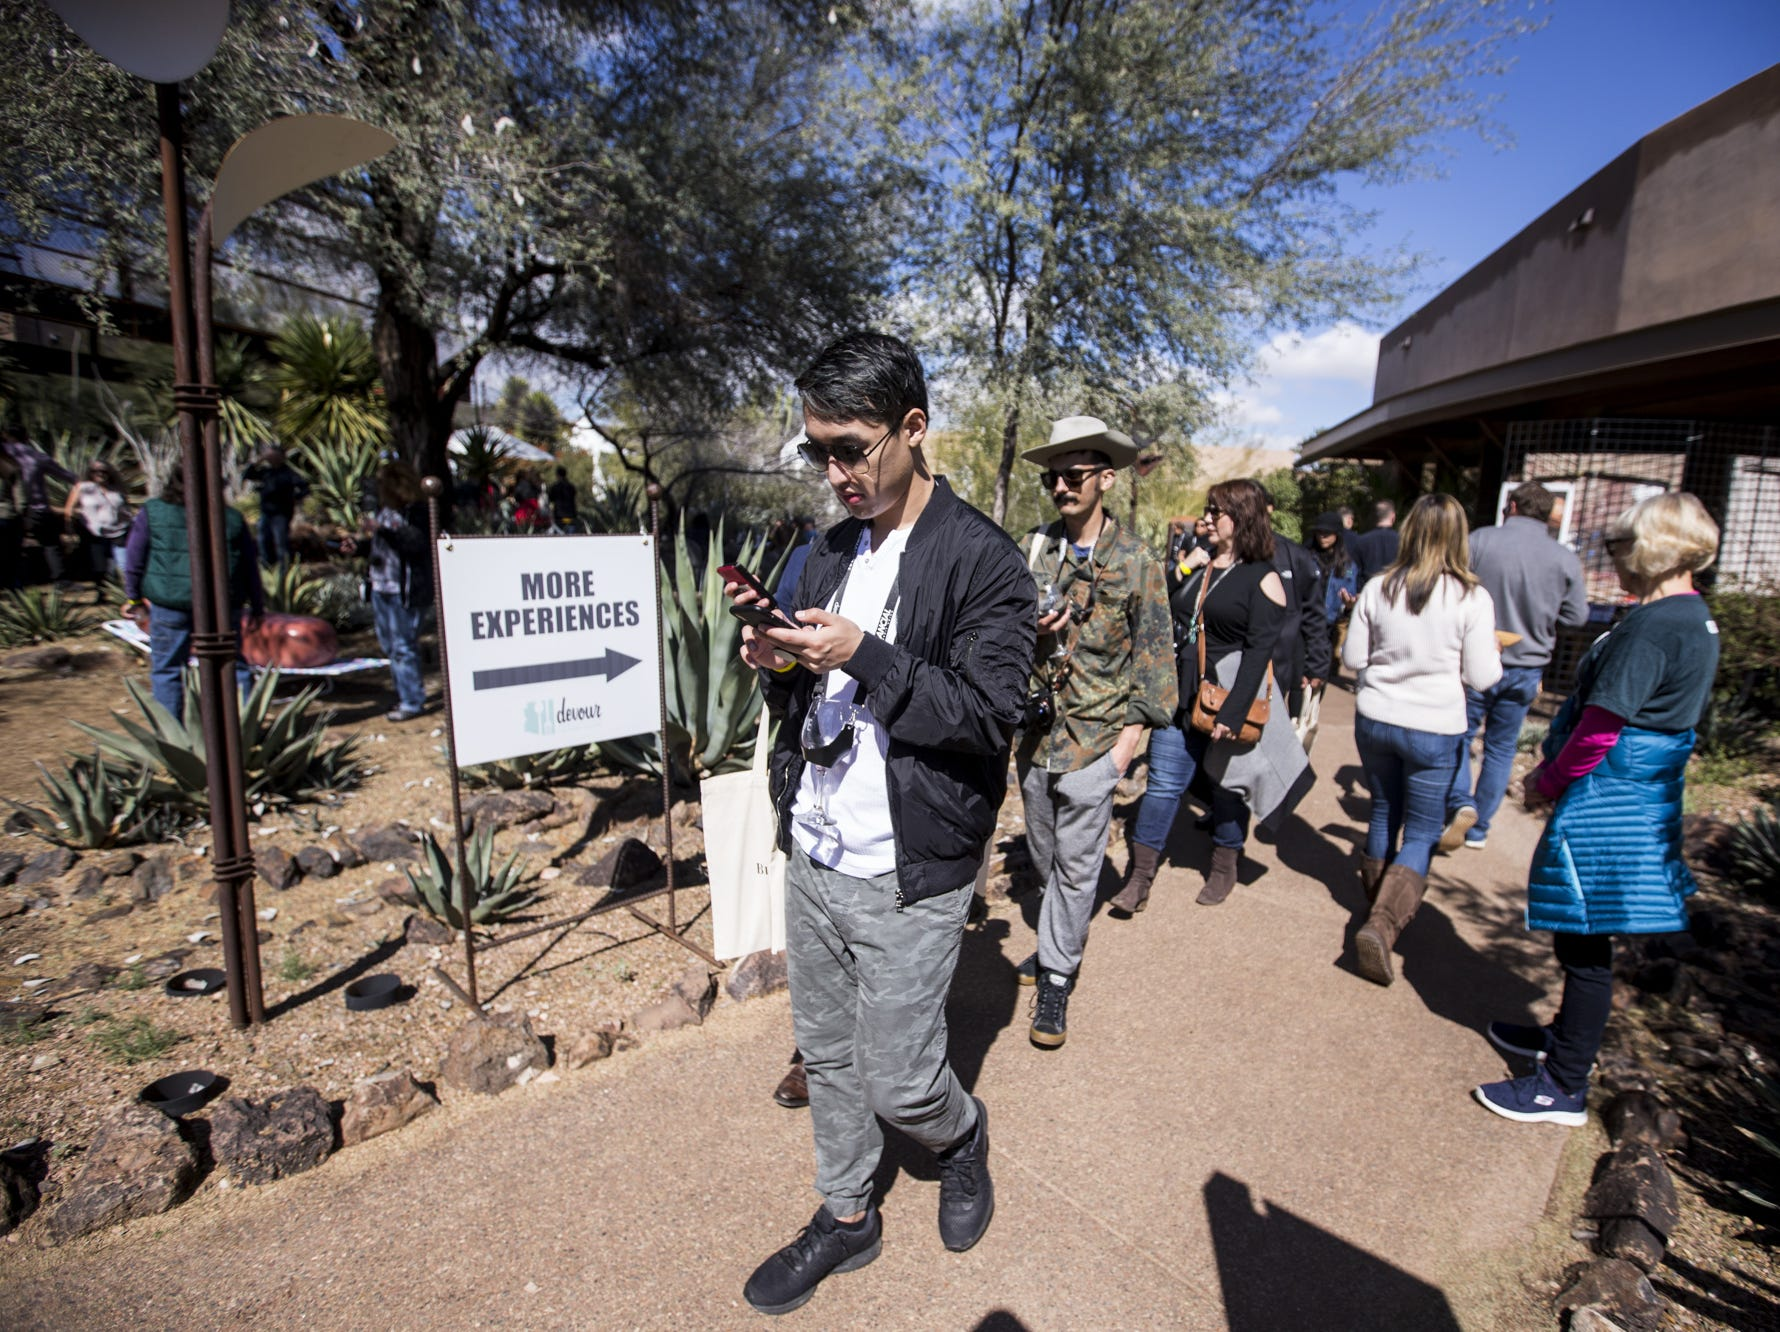 People walk during Day 1 of the Devour Culinary Classic on Saturday, Feb. 23, 2019, at Desert Botanical Garden in Phoenix.